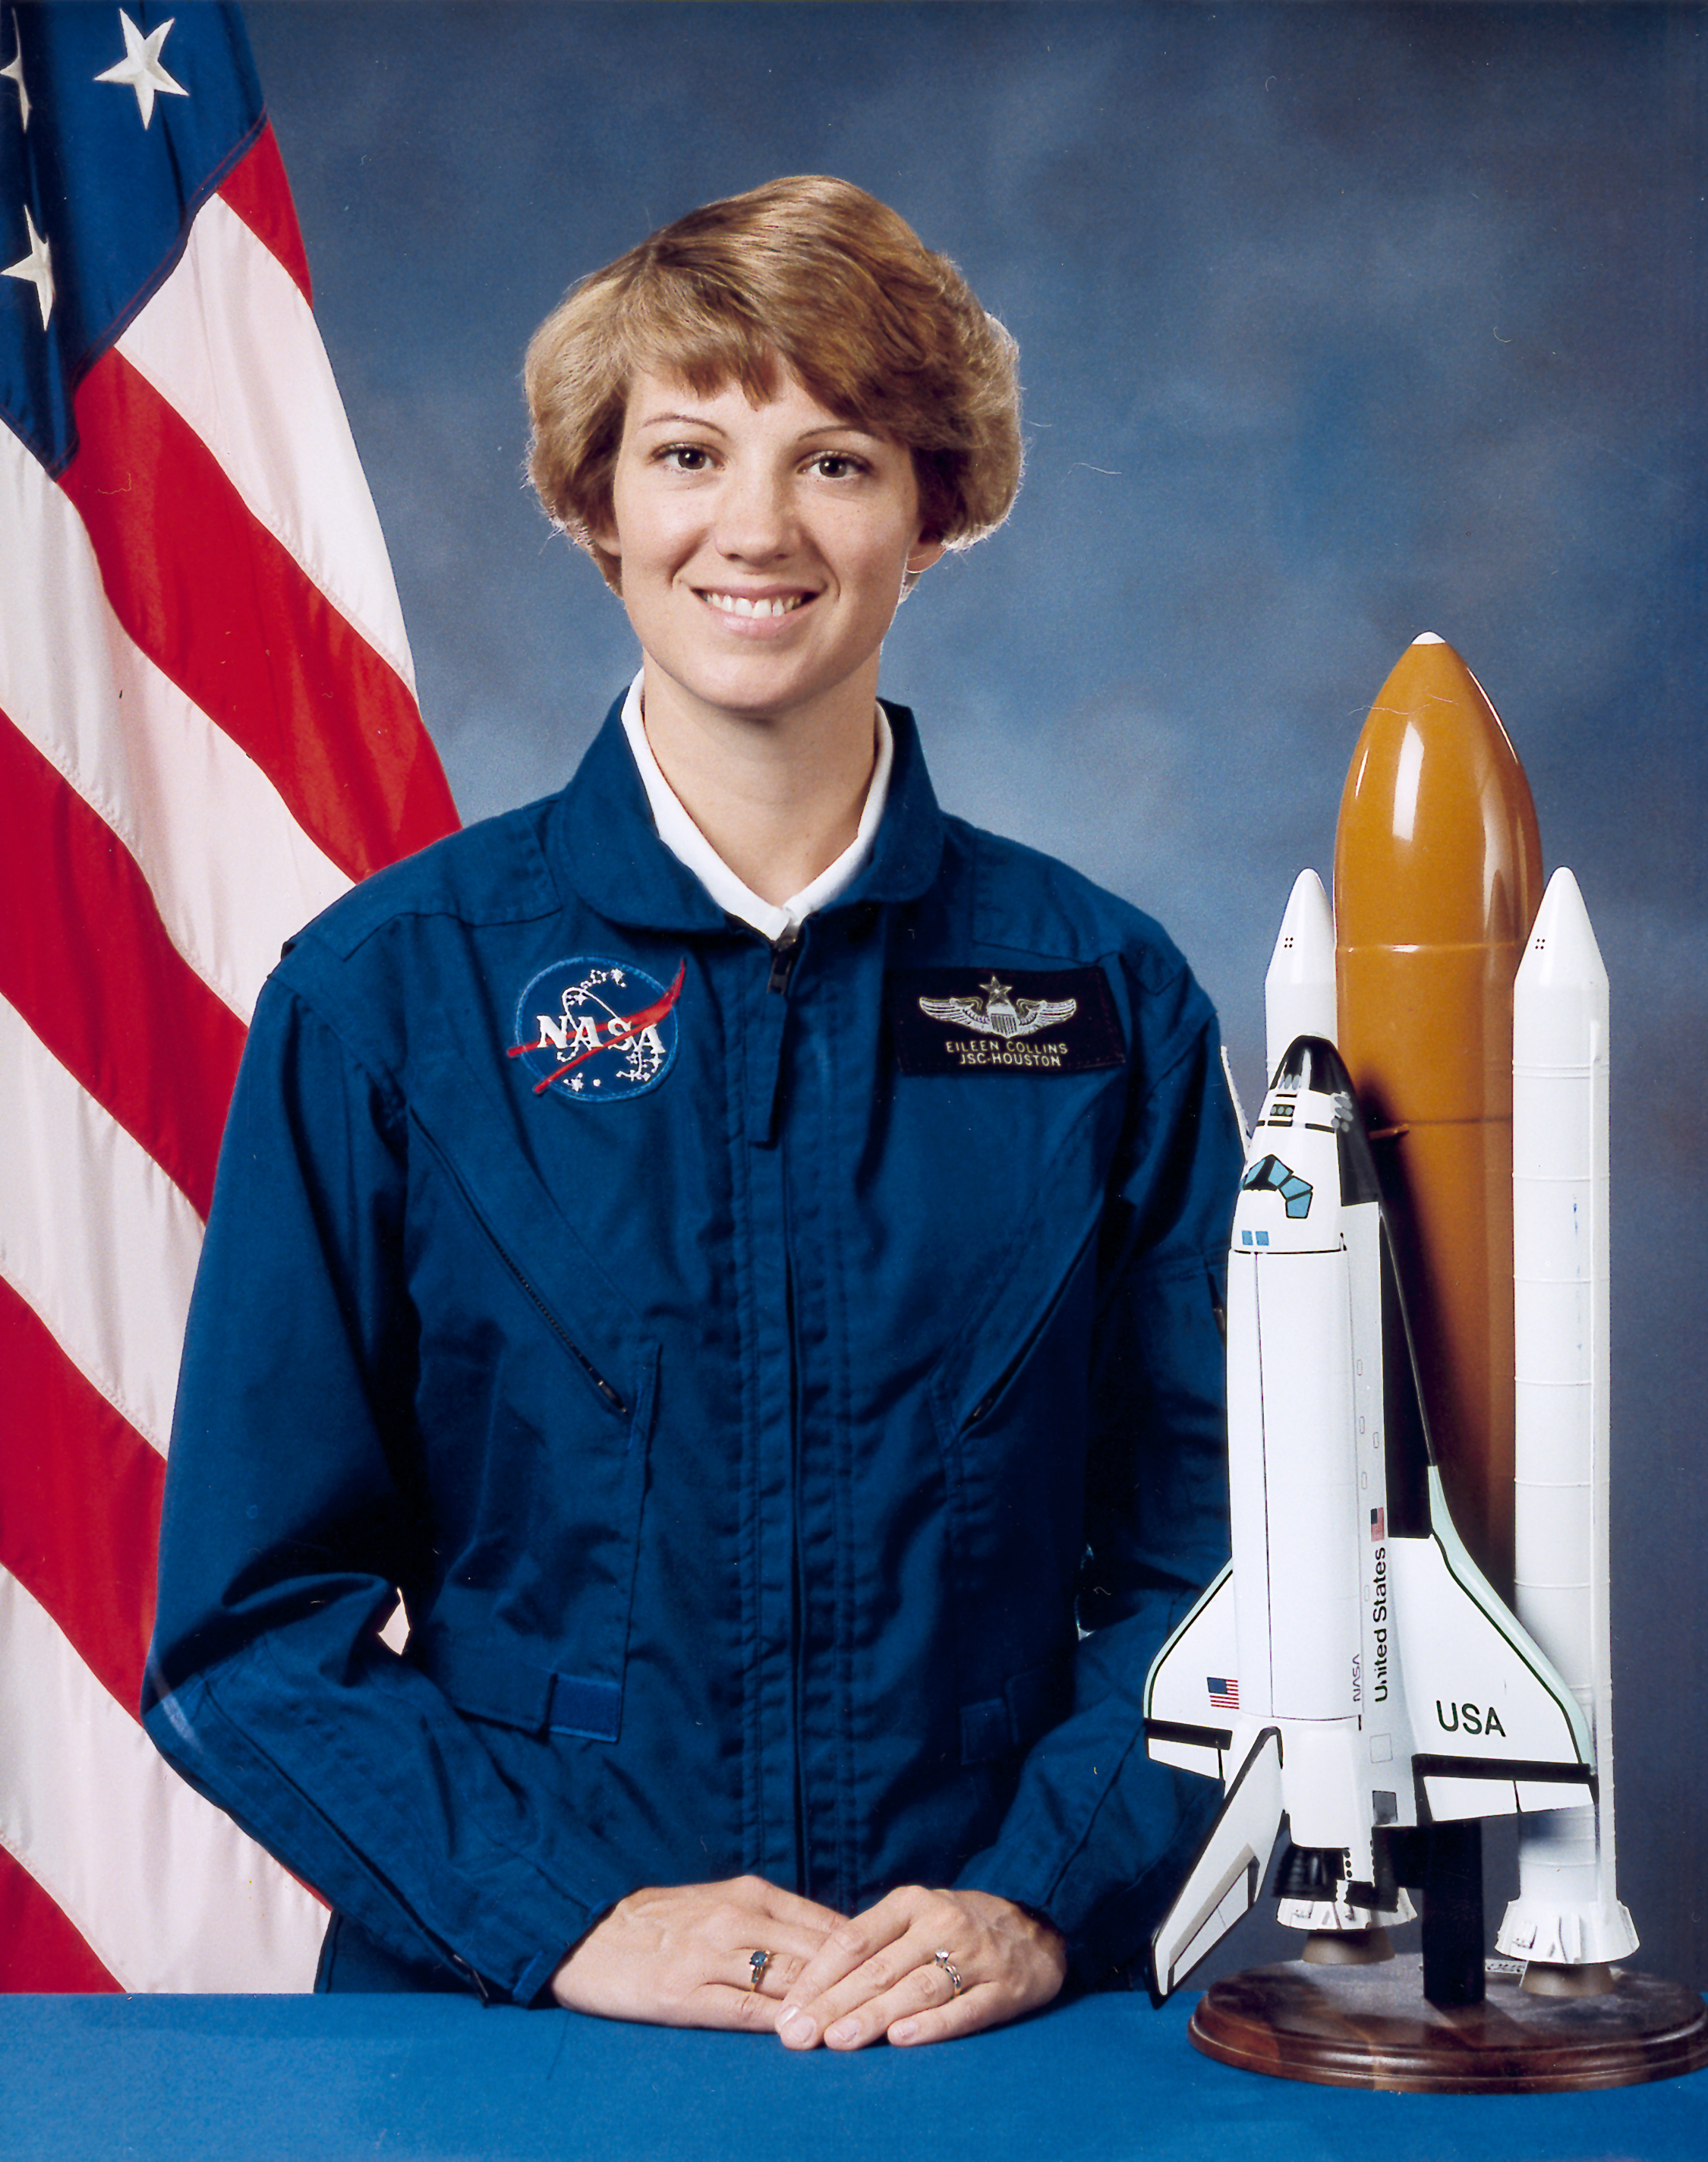 a history of eileen collins a nasa astronaut Nasa astronaut eileen collins reveals encouraging perspective and insight on the leadership skills needed to break barriers and become a successful pioneer in your field one of america's most admired women, col collins became the first female to pilot a us spacecraft with the discovery shuttle flight in 1995, and the first female commander on.